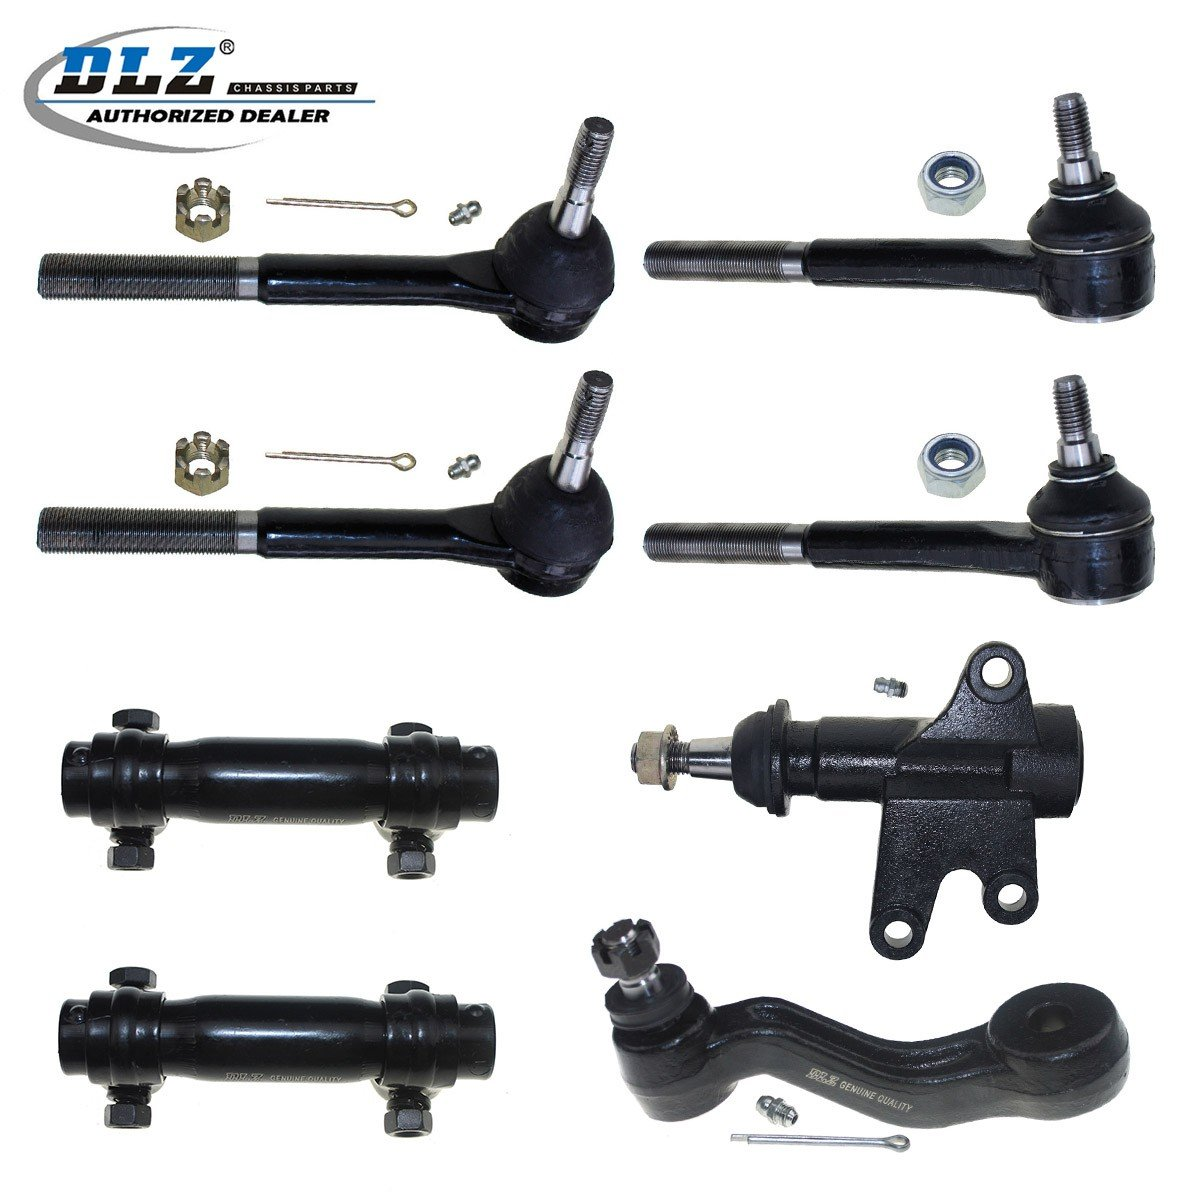 Suburban Chevrolet Blazer DLZ 8 Pcs Front Suspension Kit-2 Outer 2 Inner Tie Rod End 2 Adjusting Sleeve 1 Idler Arm 1 Bracket Assembly Compatible with Chevrolet GMC K1500 K2500 K3500 Tahoe Yukon